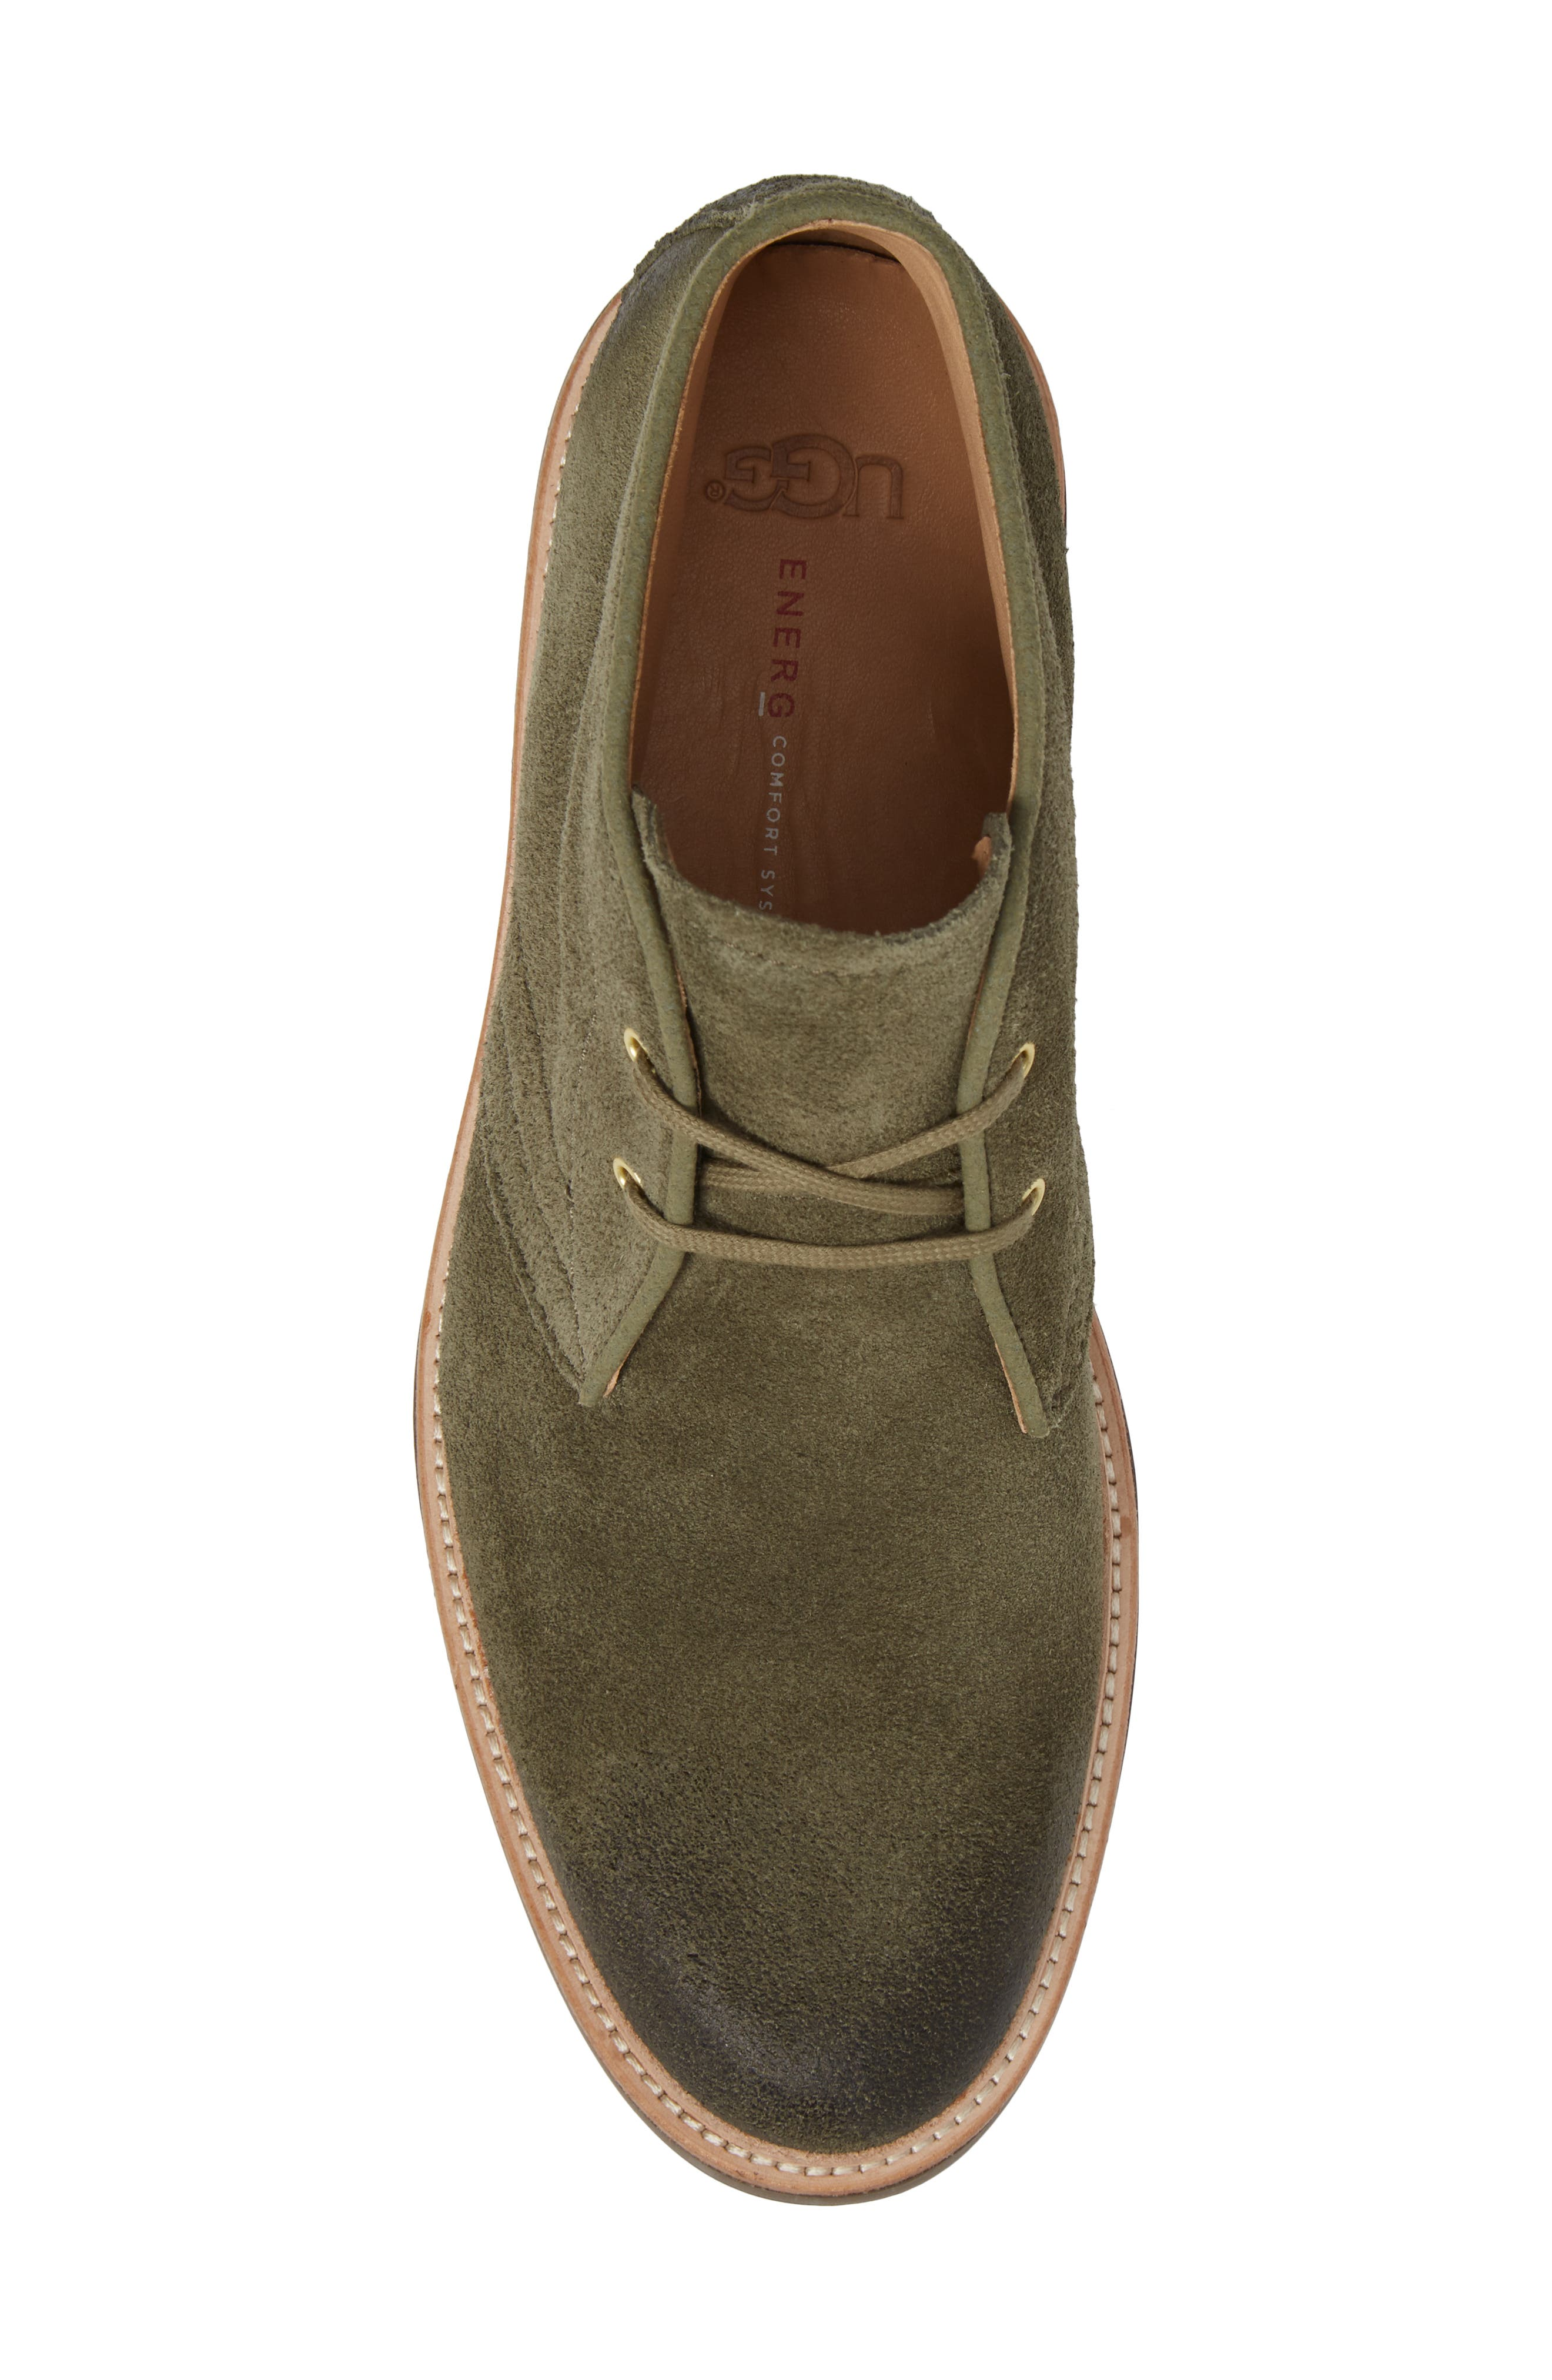 Australia Dagmann Chukka Boot,                             Alternate thumbnail 5, color,                             Olive